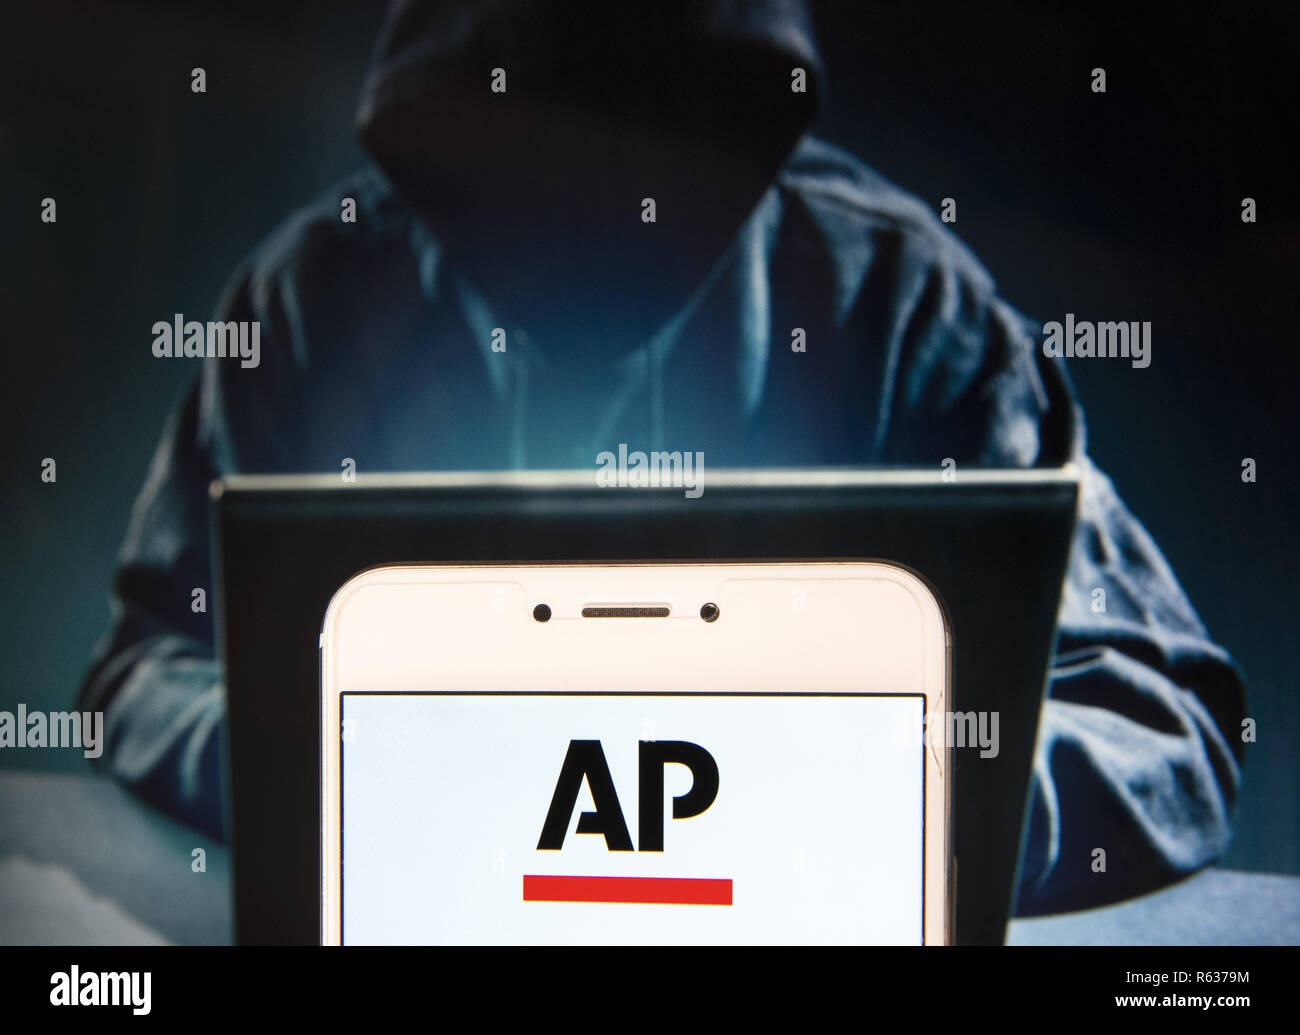 Hong Kong, China. 23rd Nov, 2018. News agency Associated Press (AP) logo is seen on an Android mobile device with a figure of hacker in the background. Credit: Miguel Candela/SOPA Images/ZUMA Wire/Alamy Live News - Stock Image